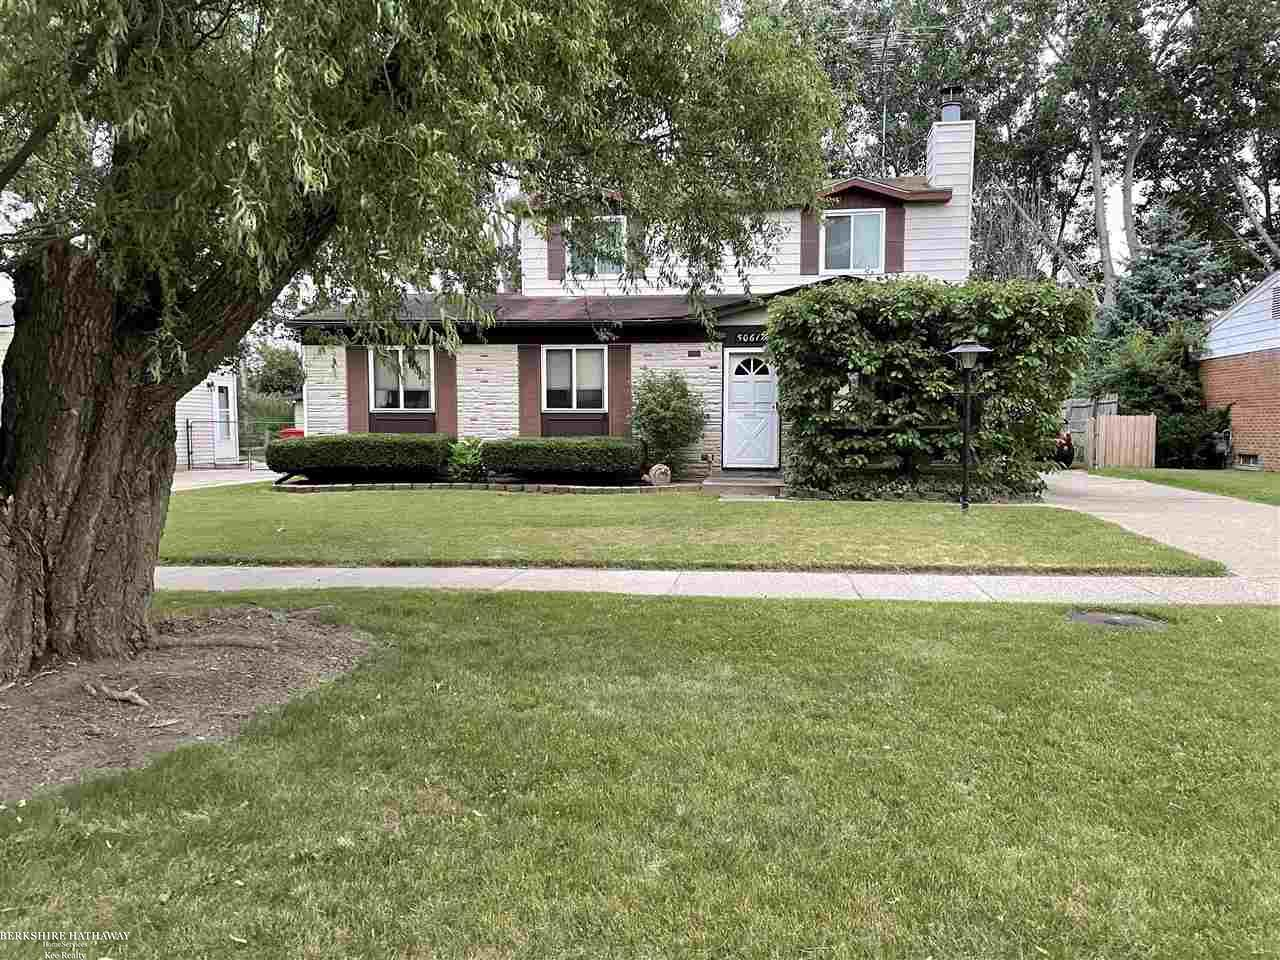 3 Bedroom split level.  Master bedroom on the first level.  Spacious floor plan with open concept.  2nd level has 2 bedrooms.  Newer windows on 2nd floor.  Nice patio with gazebo.  Large yard and 2.5 garage.  Vinyl sided.  Nice neighborhood in Anchor Bay School District.